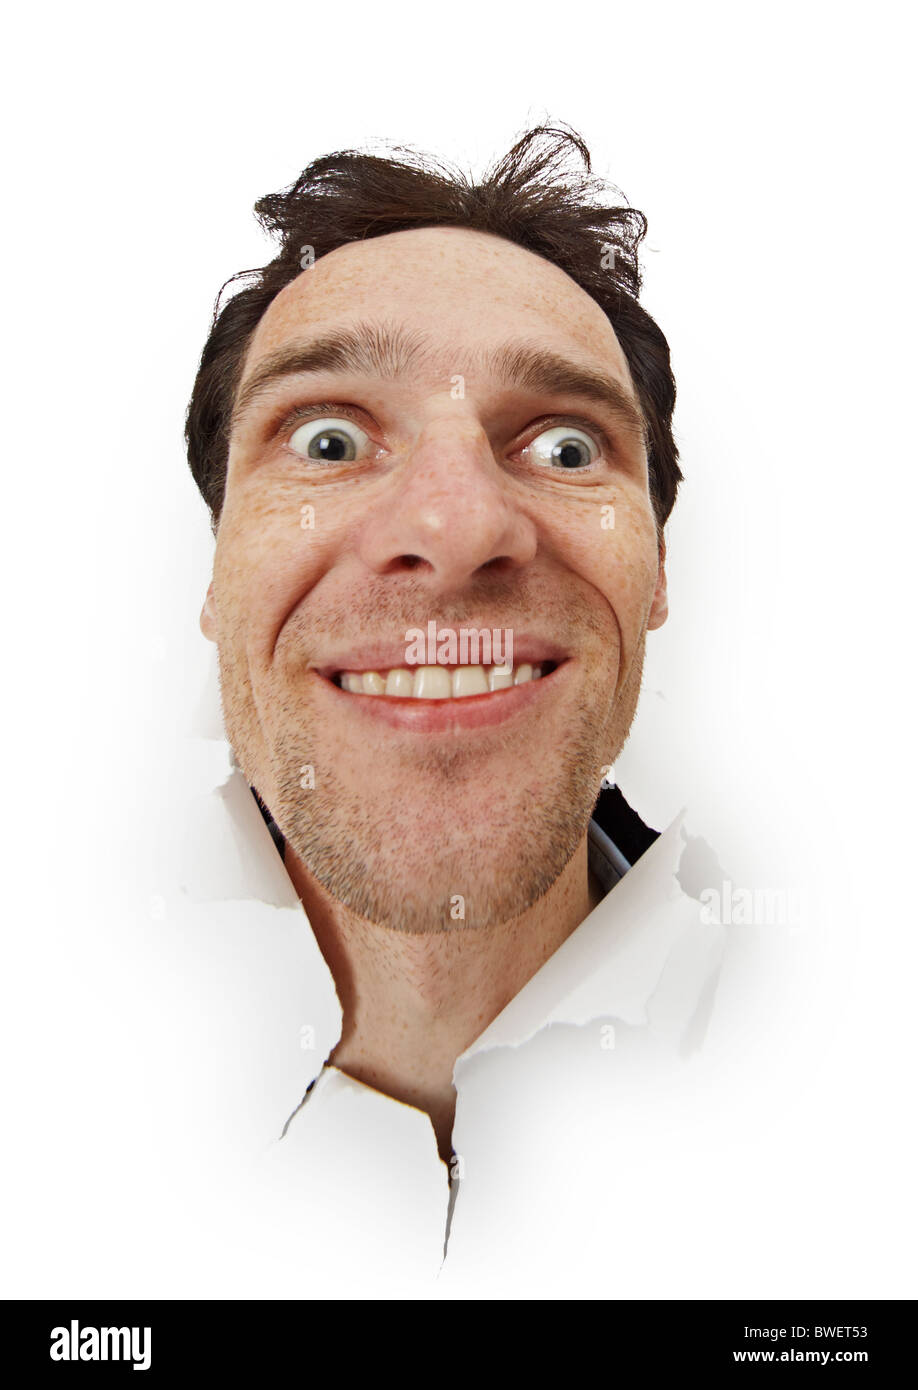 Crazy funny man opened his eyes isolated on a white background - Stock Image